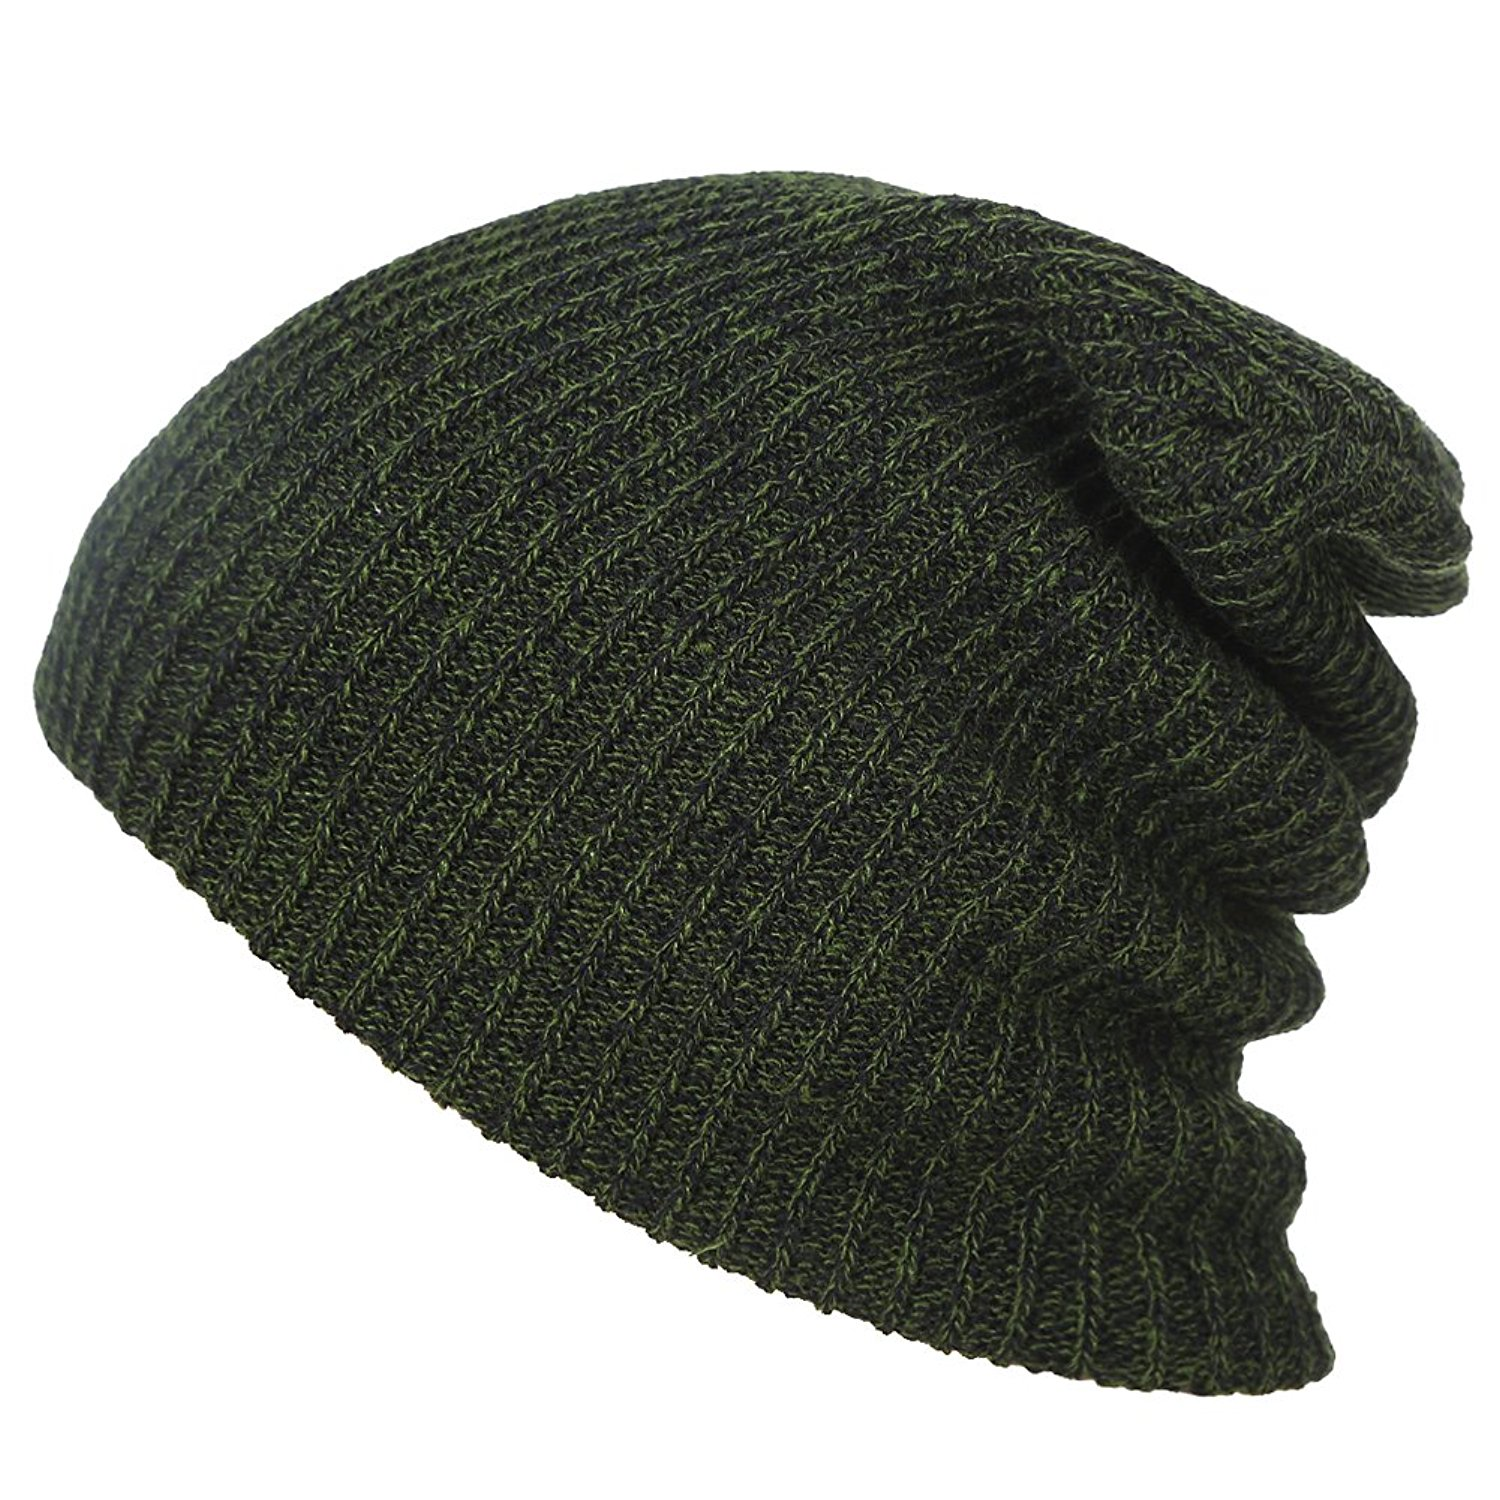 MEXUD Mens Slouchy Long Oversized Beanie Knit Cap Ski Slouchy Chic Cap Skull